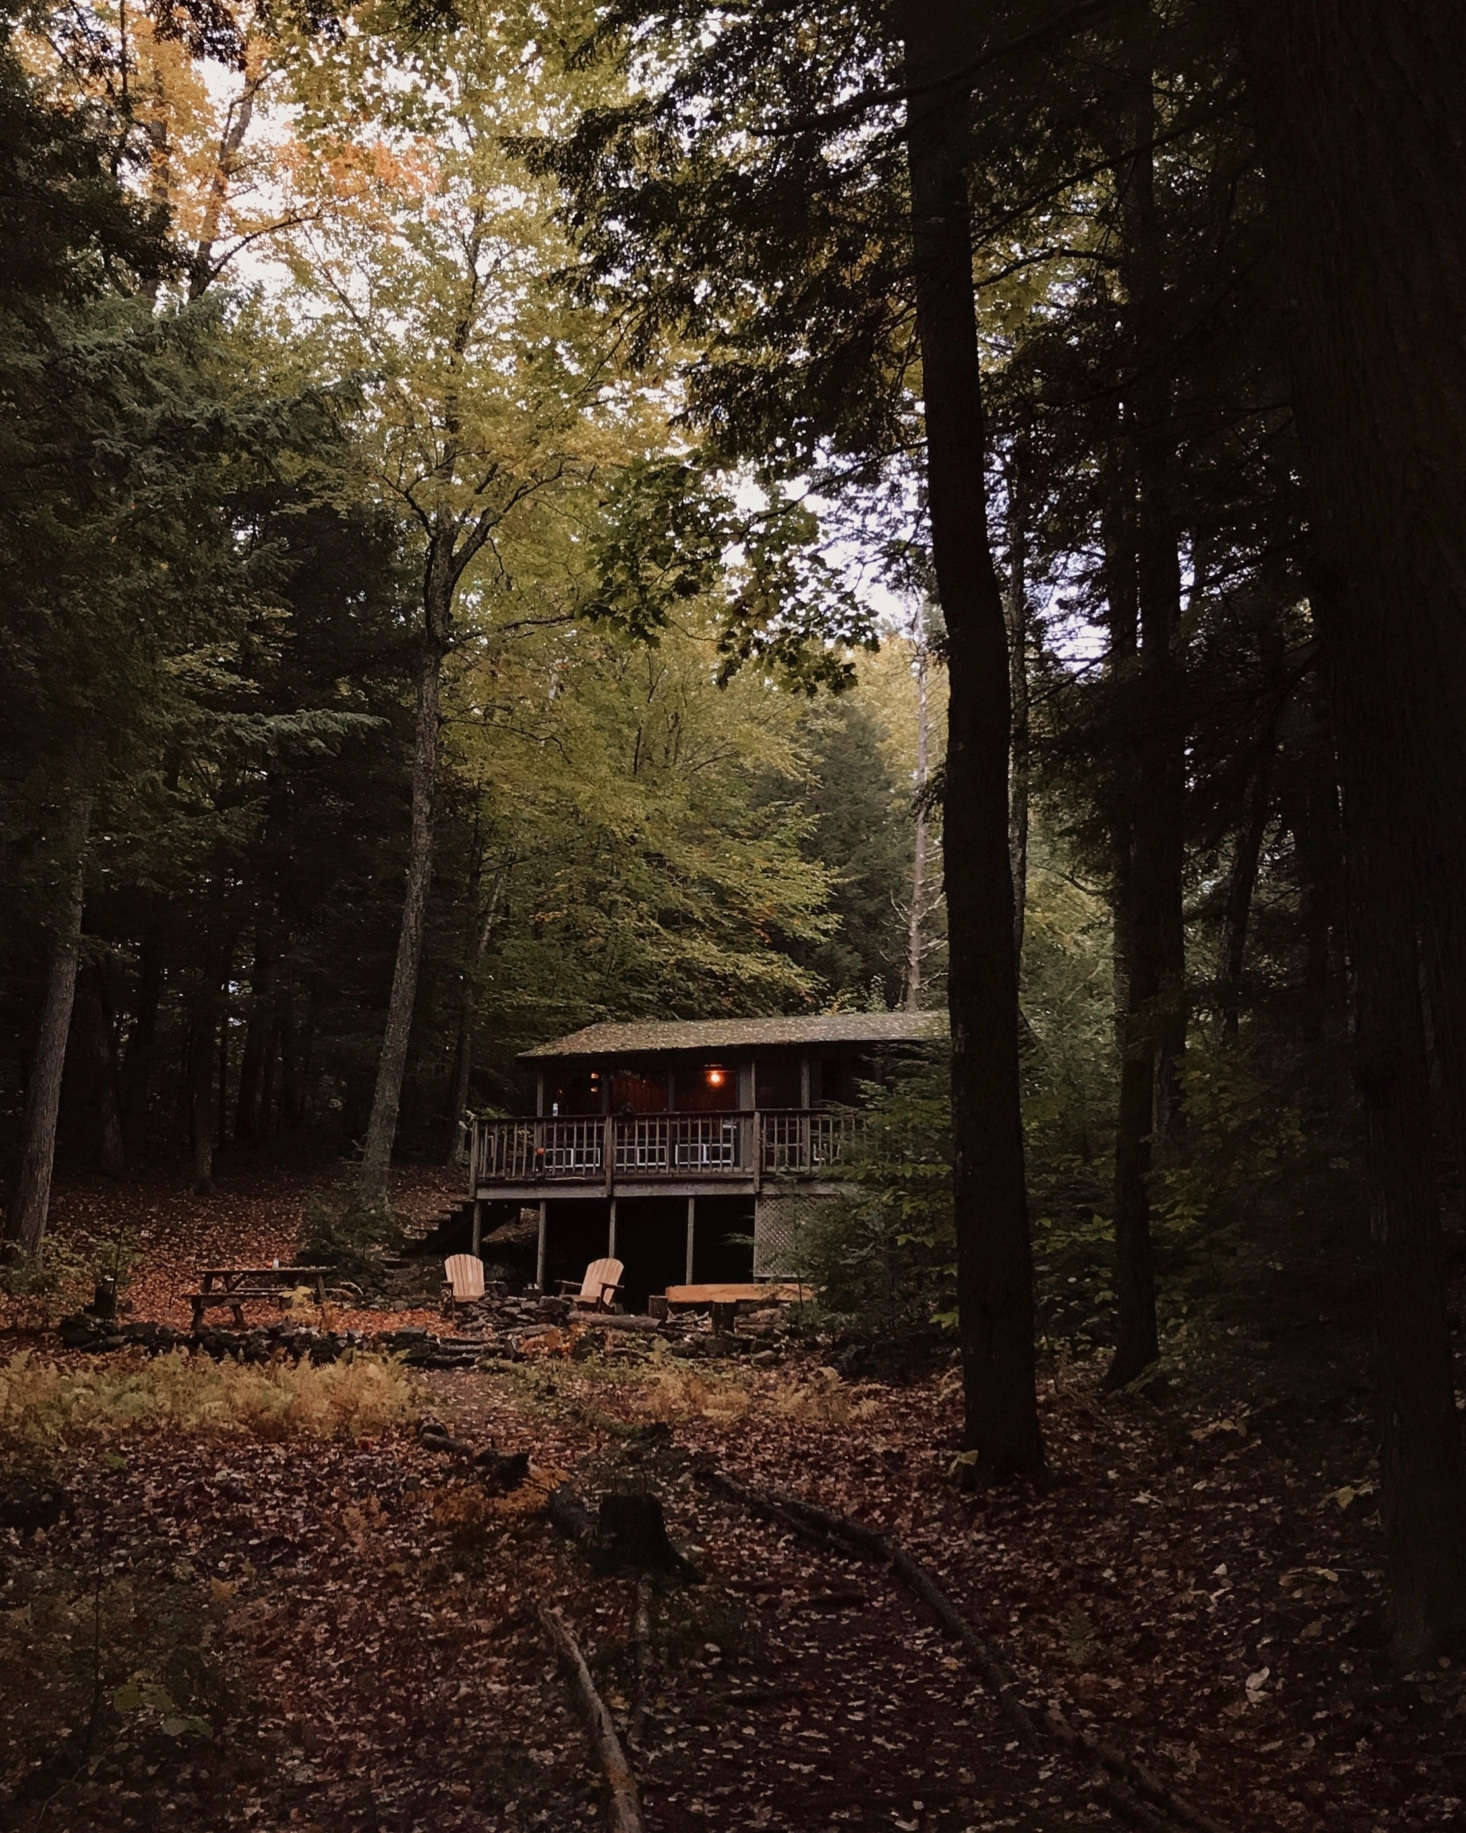 The cabin, tucked in the New Hampshire woods.